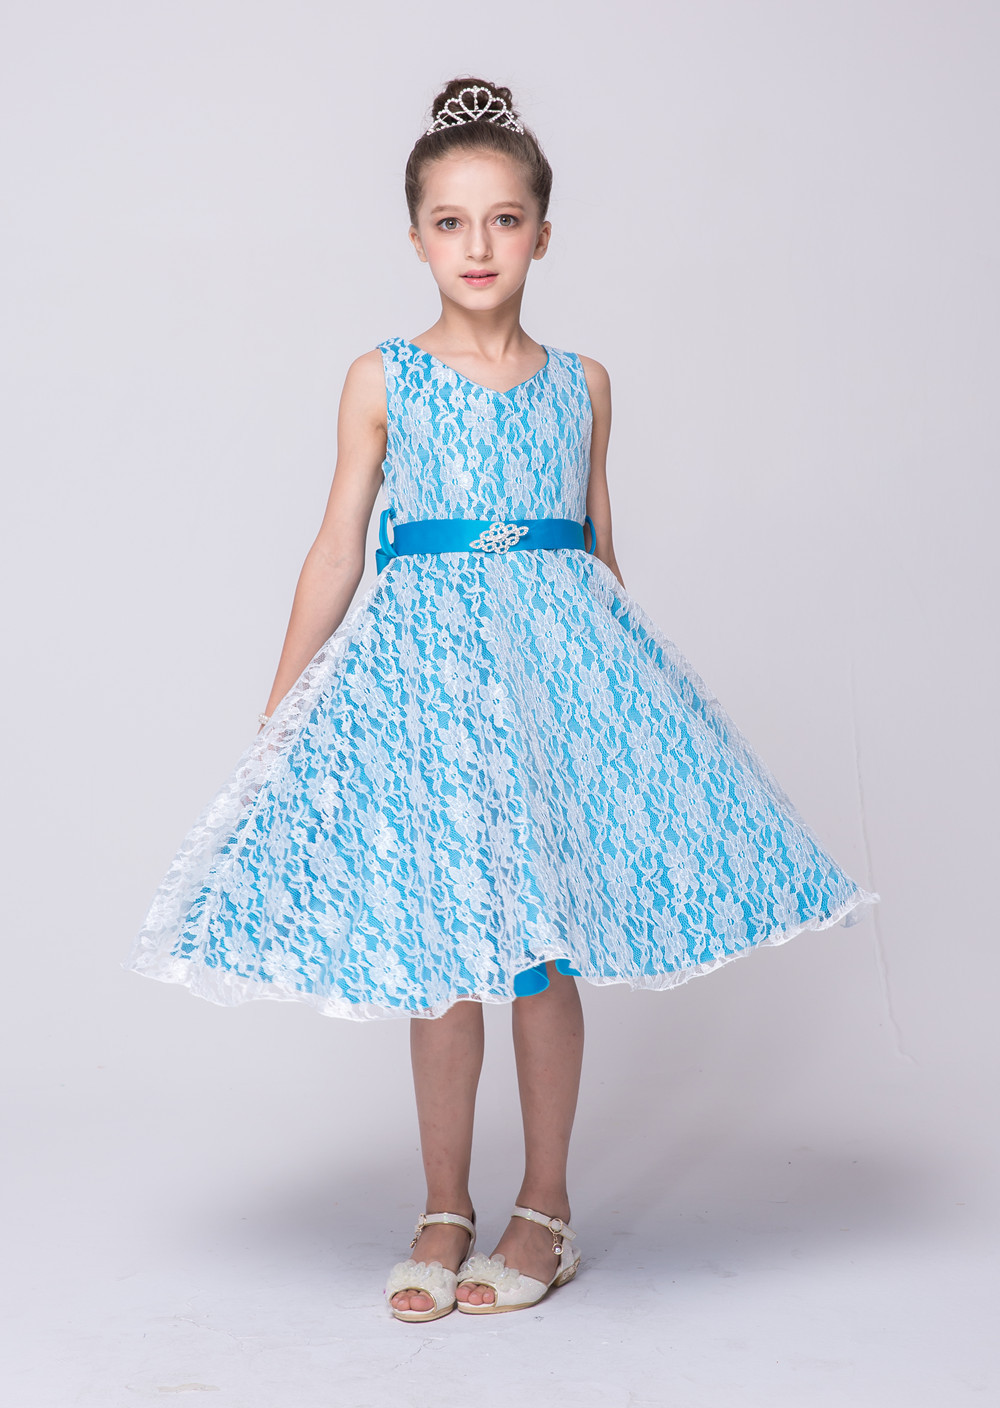 Popular childs bridesmaid dress buy cheap childs bridesmaid dress children prom clothes princess flower girl dress baby kids party wear gowns blue and white wedding ombrellifo Images